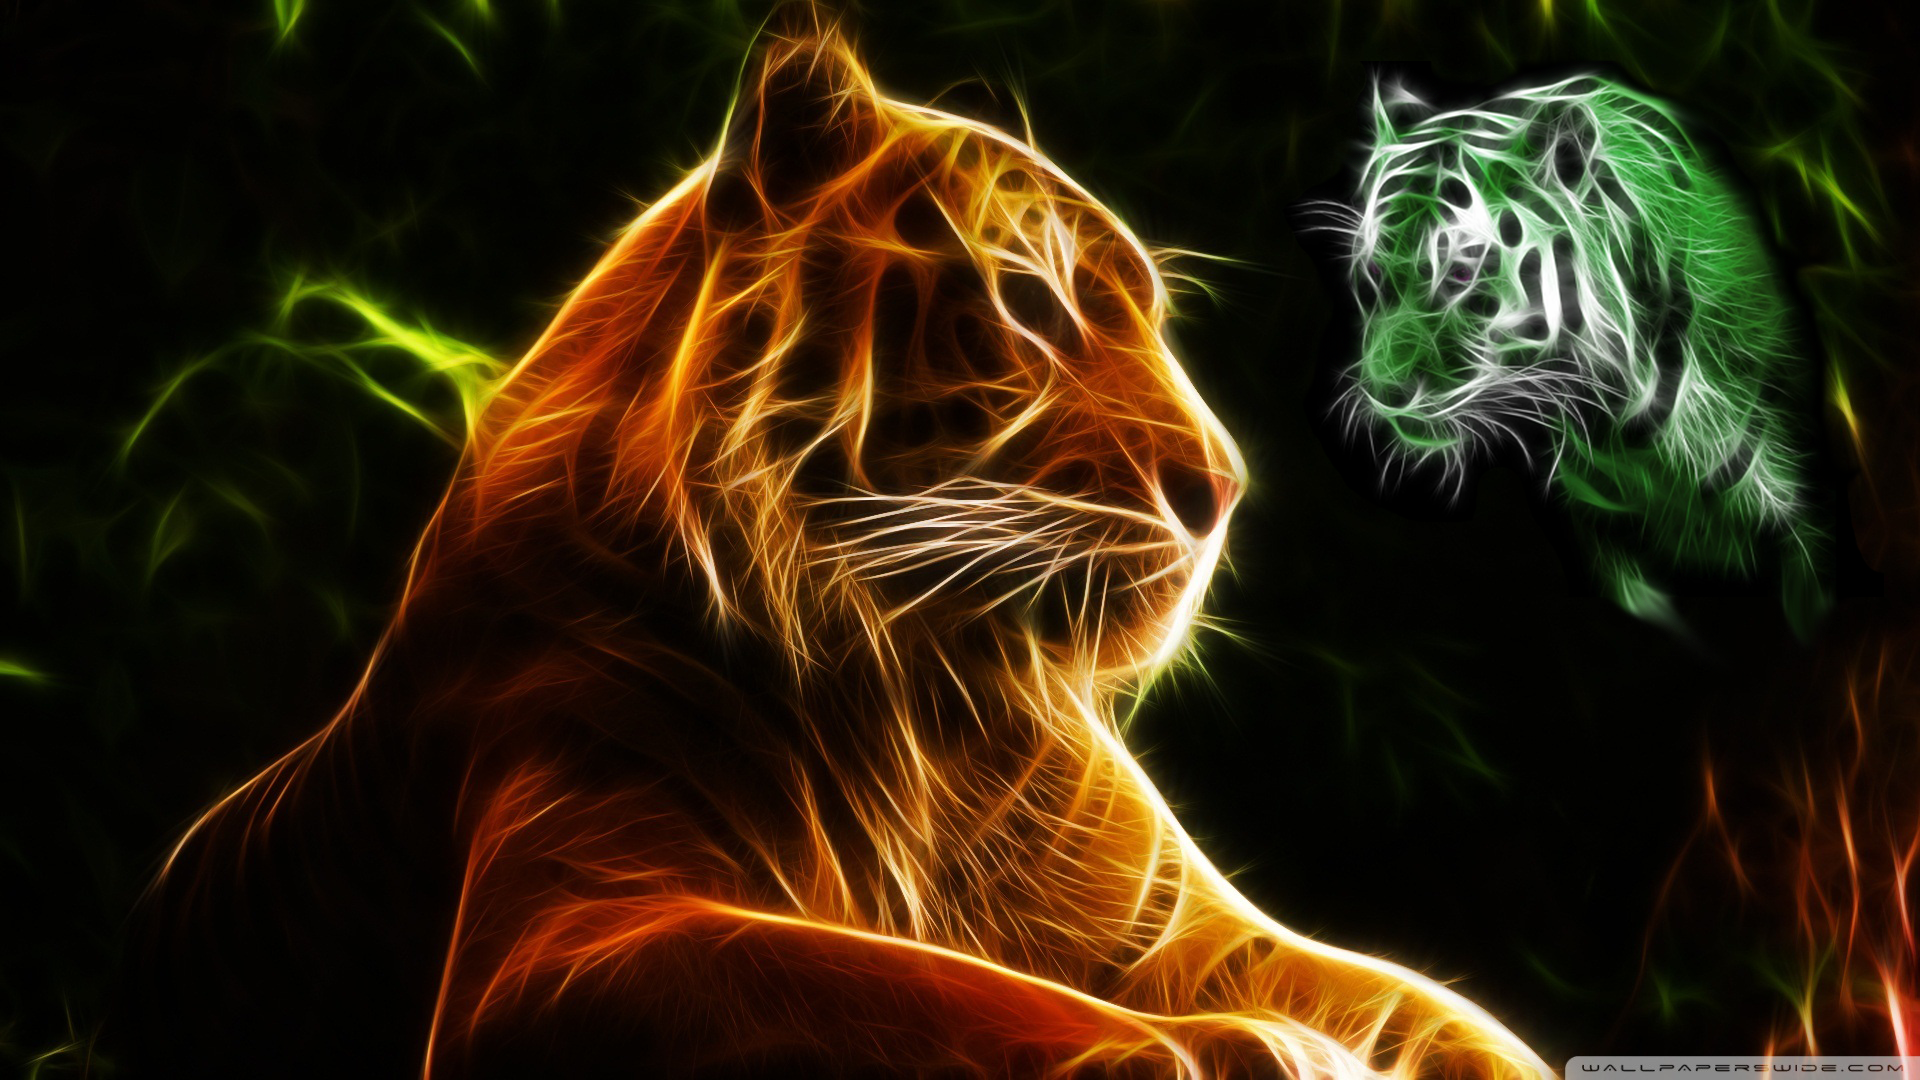 I WANT TO PAINT THIS! Tiger wallpaper, Cute tigers